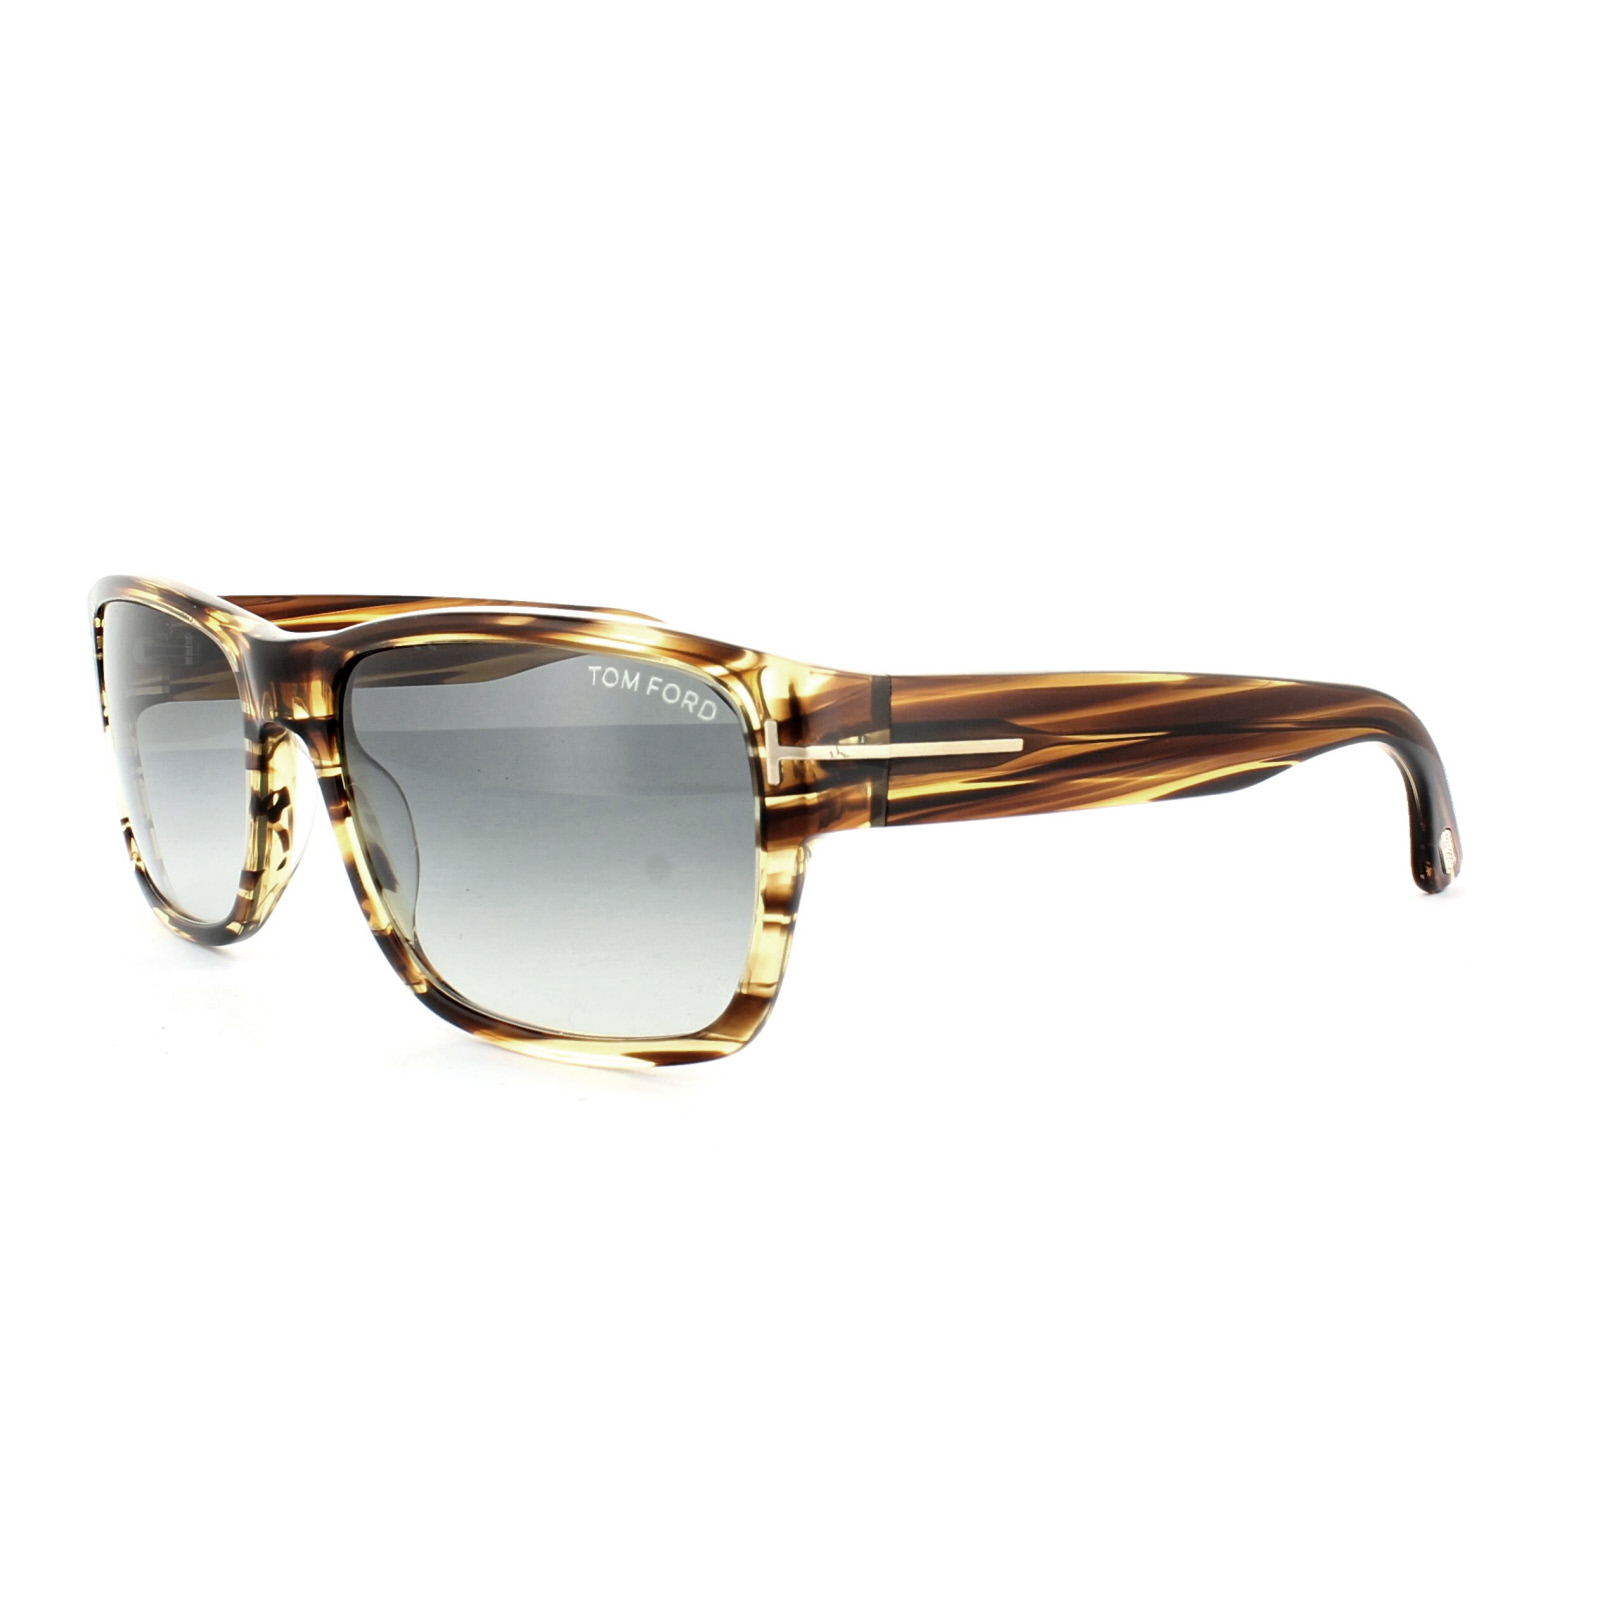 9f4114fcf00 Sentinel Tom Ford Sunglasses 0445 Mason 50B Brown Marble Grey Gradient